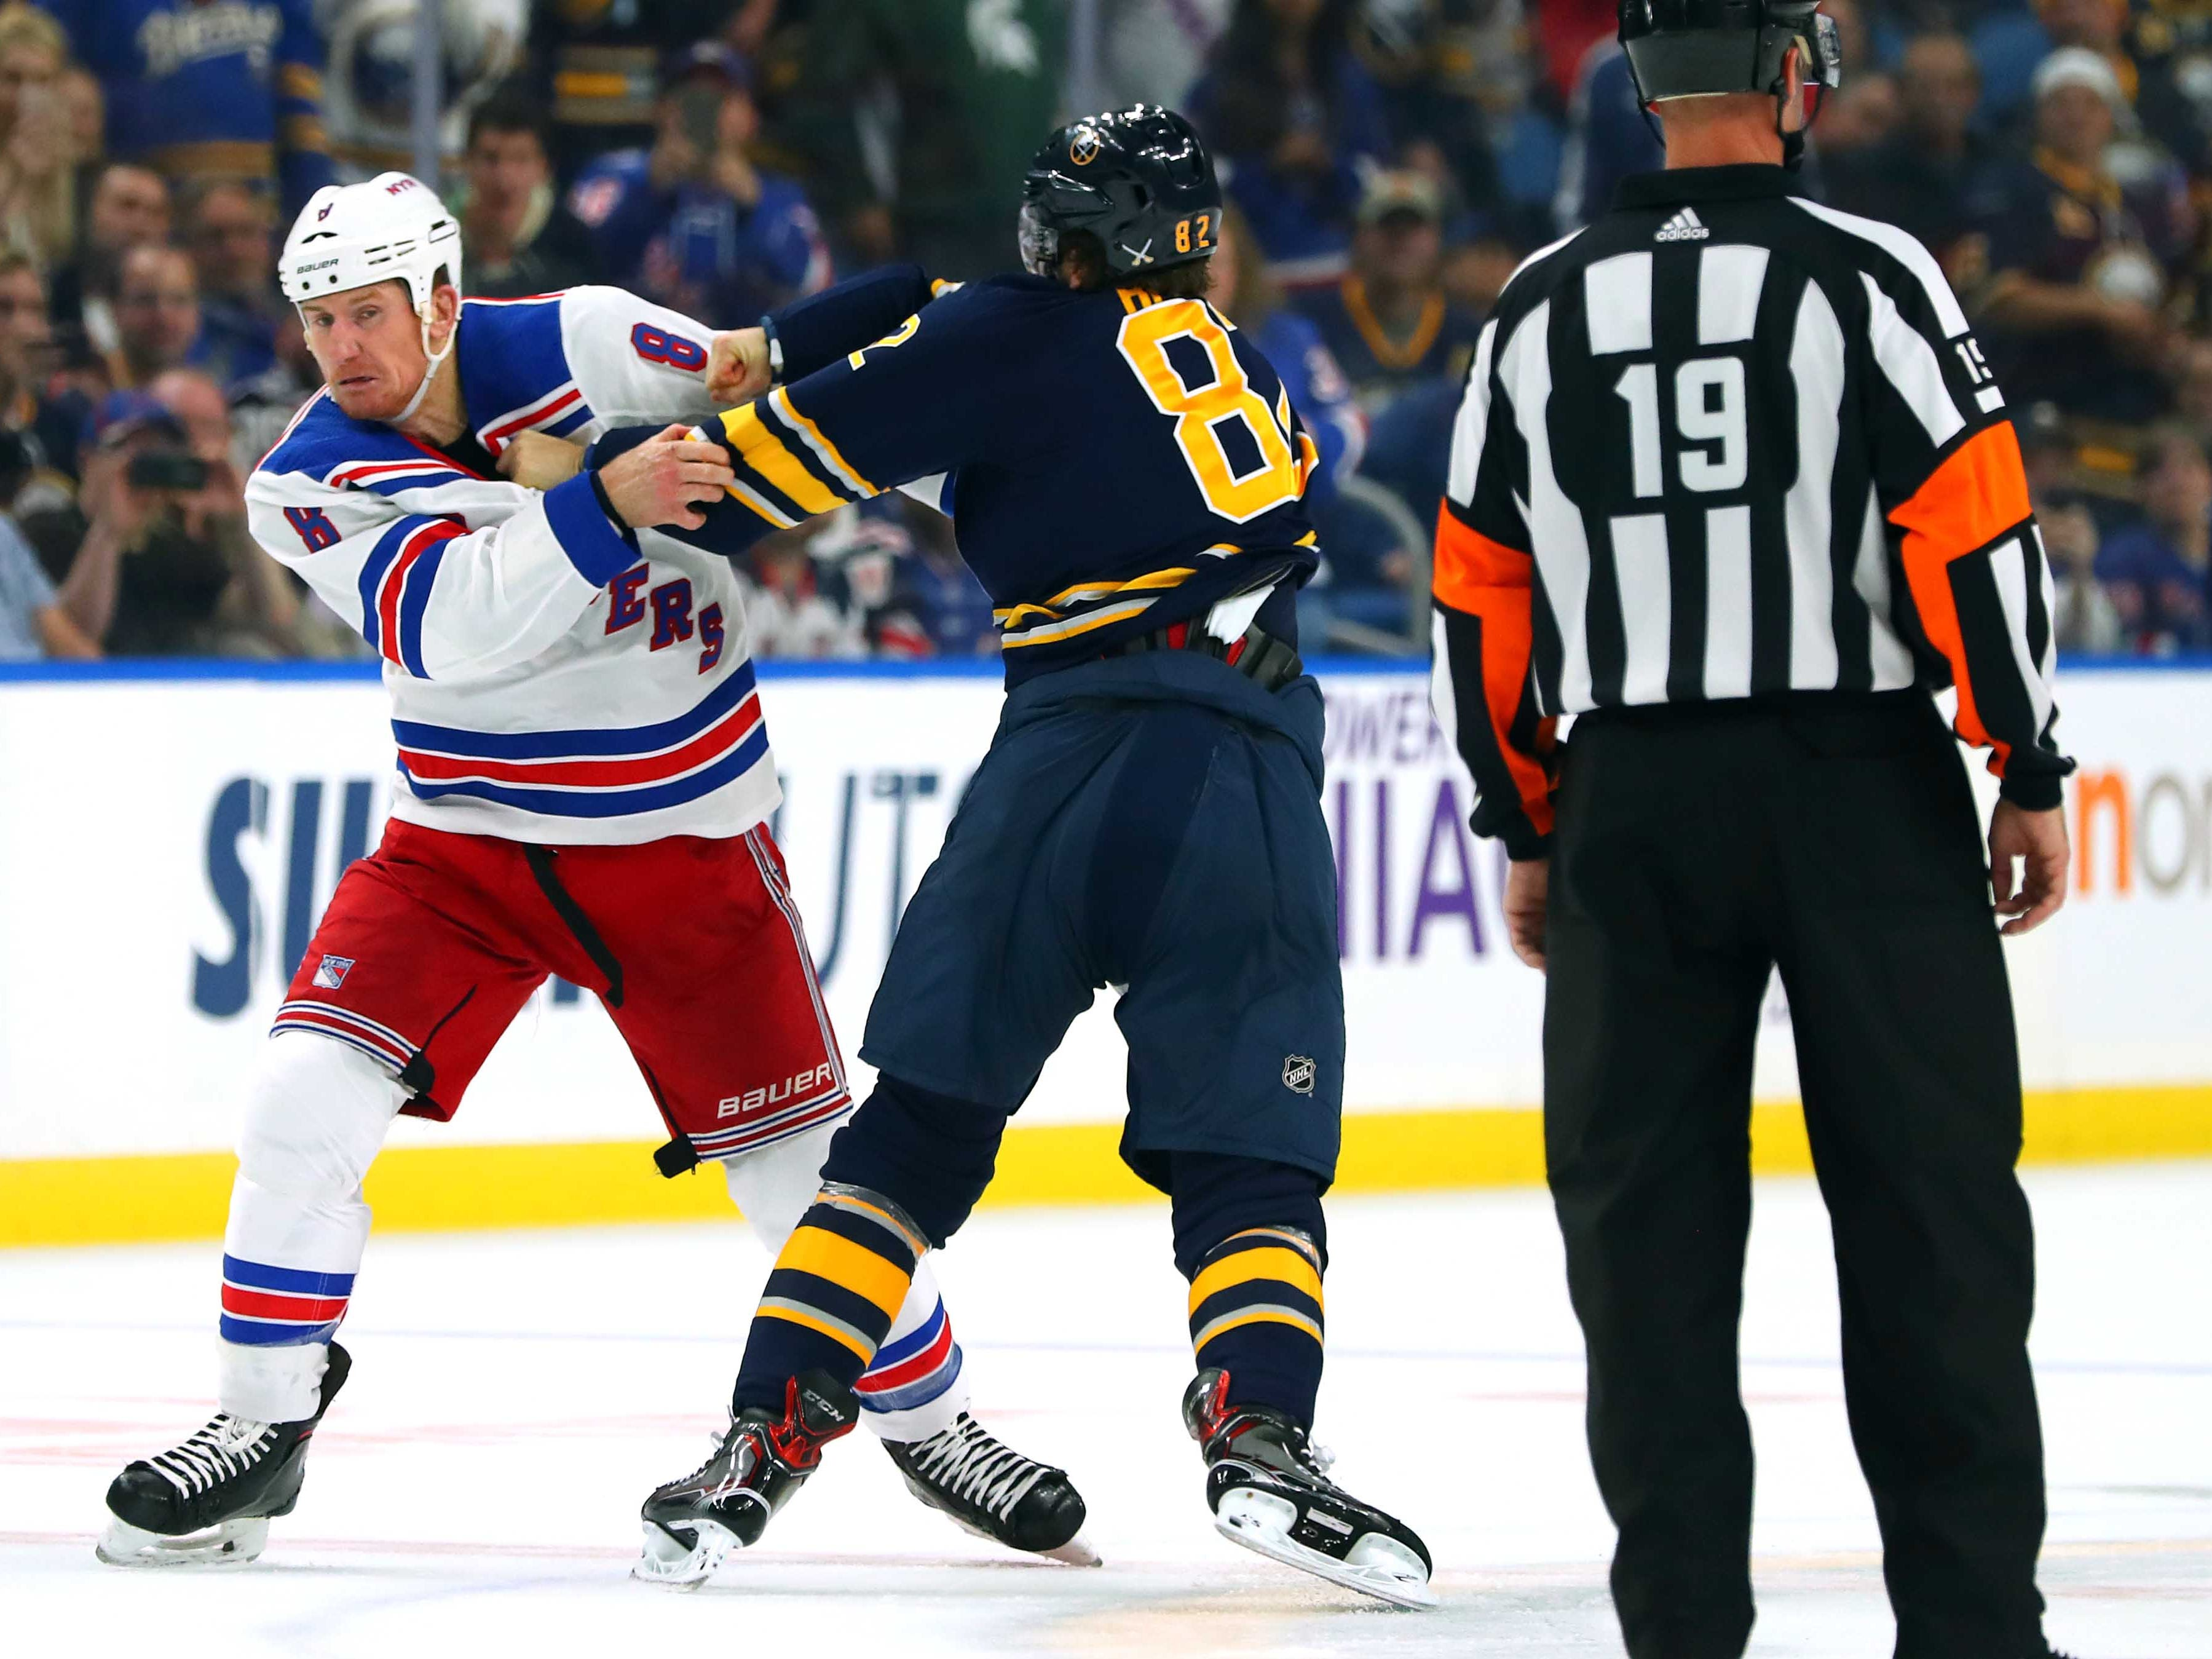 Oct. 6: Rangers' Cody McLeod vs. Sabres' Nathan Beaulieu.